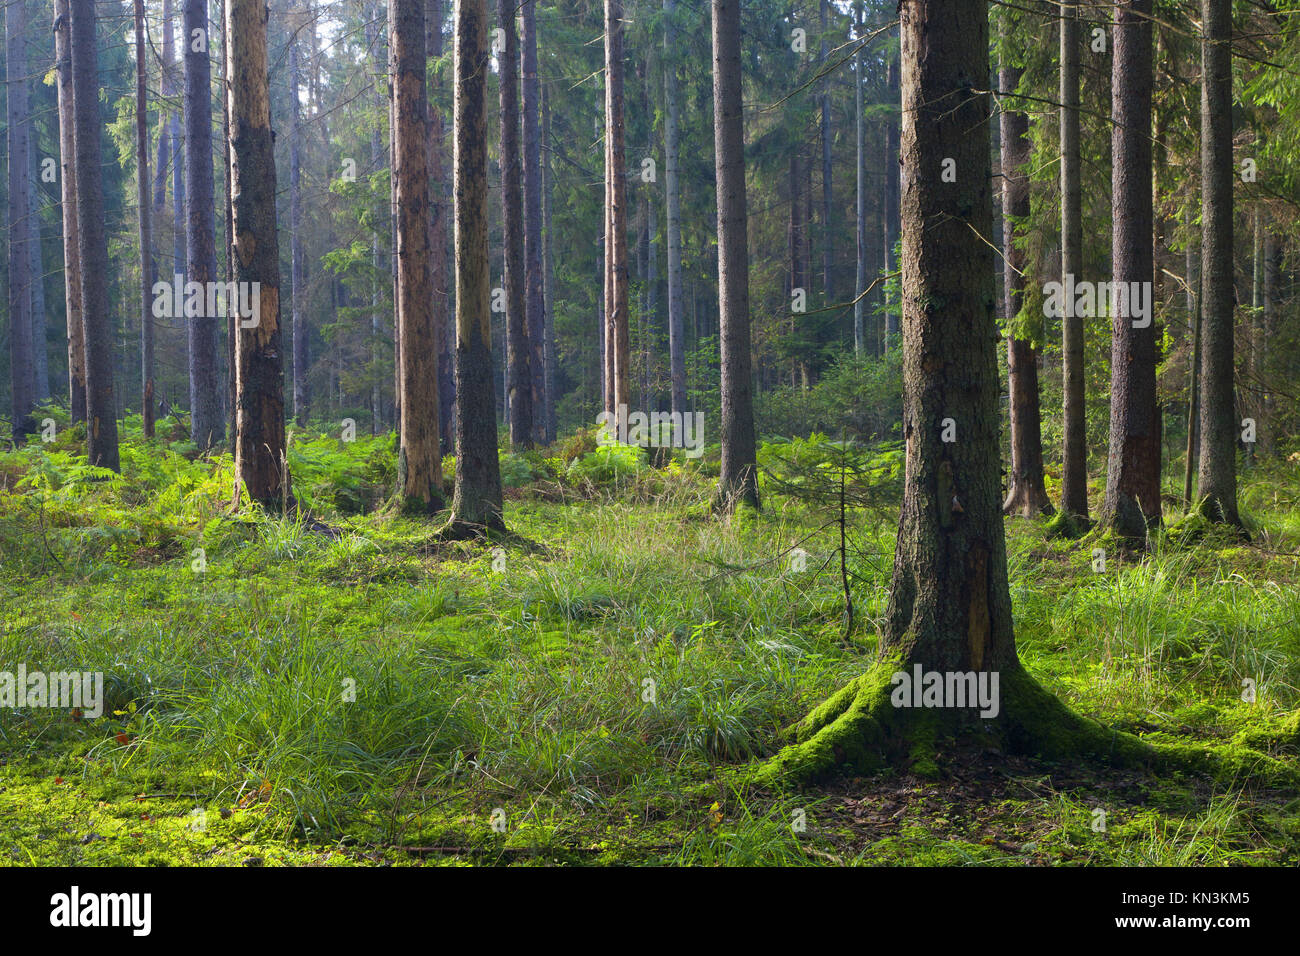 Early autumn morning in the forest with mist and dead spruces still standing. - Stock Image